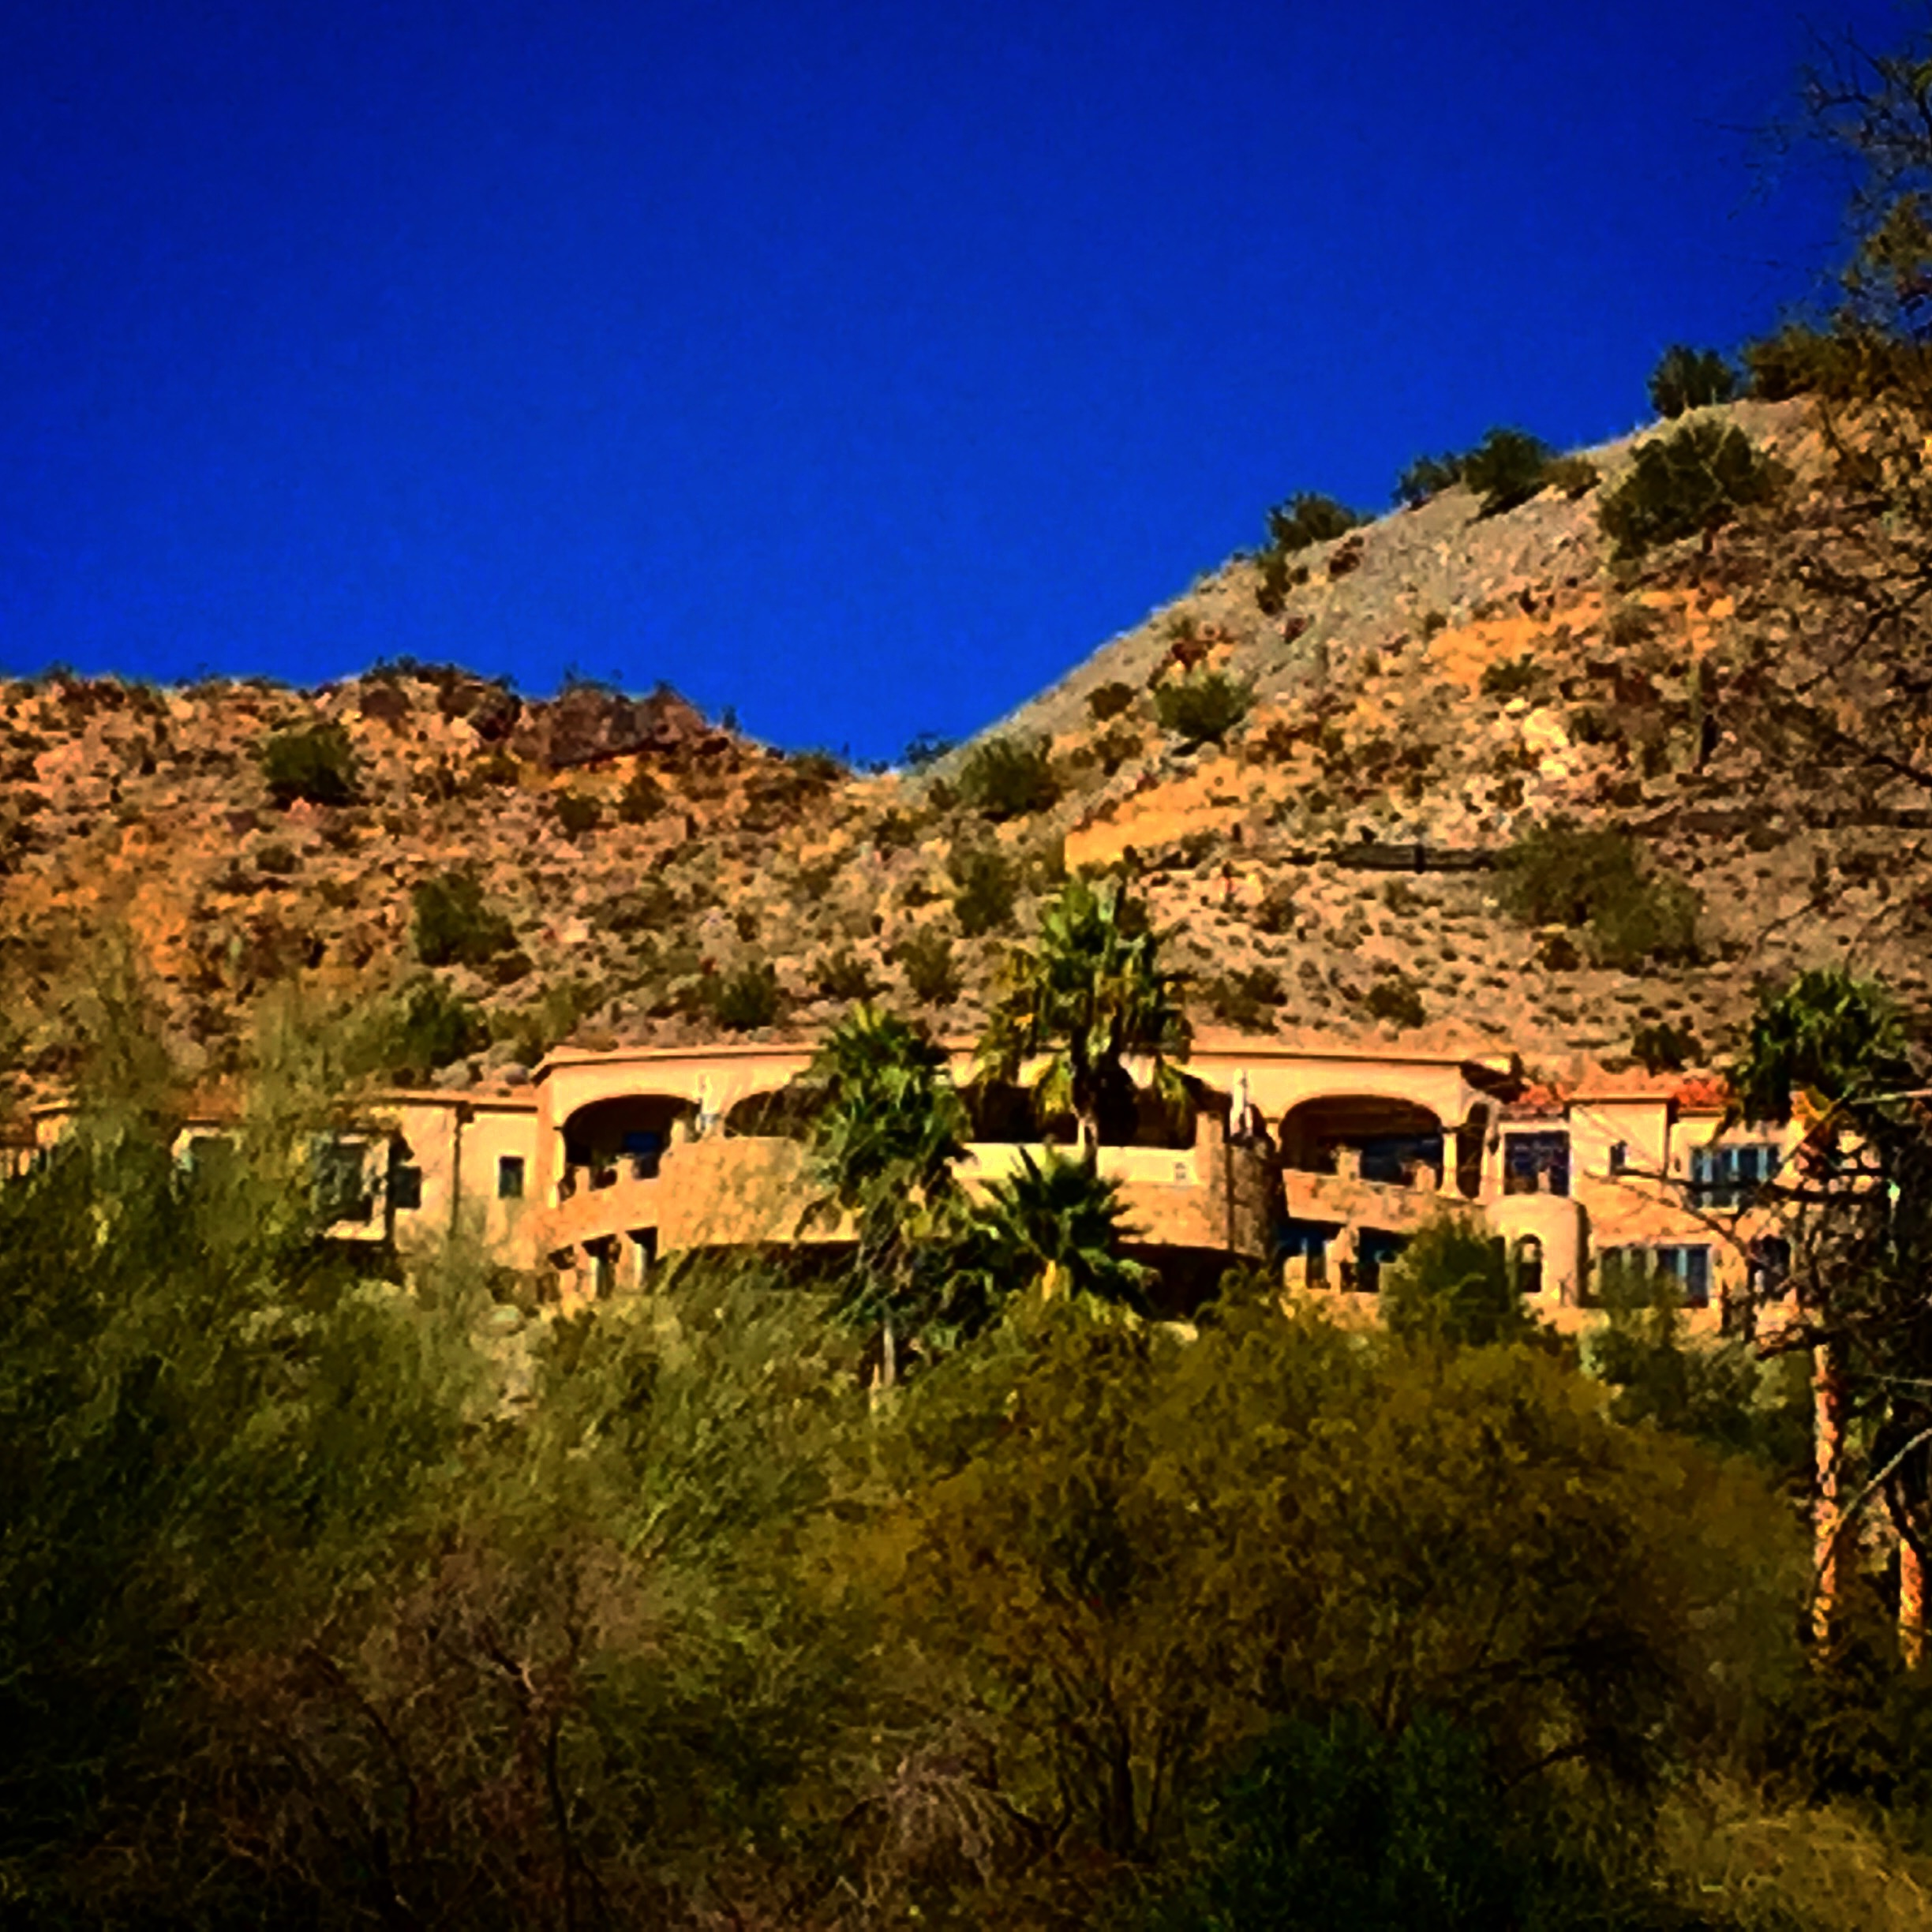 Scottsdale has stylish homes amidst the rocky terrain.